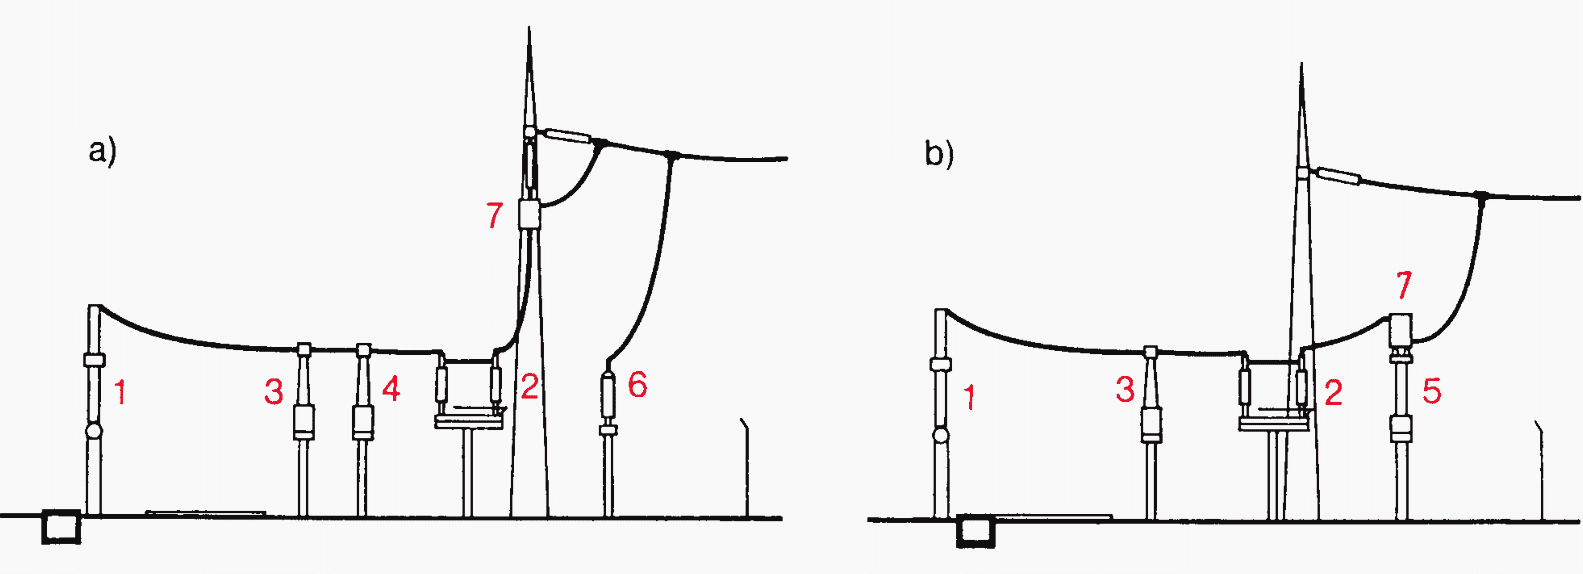 Arrangement of overhead line bays for power-line carrier telephony